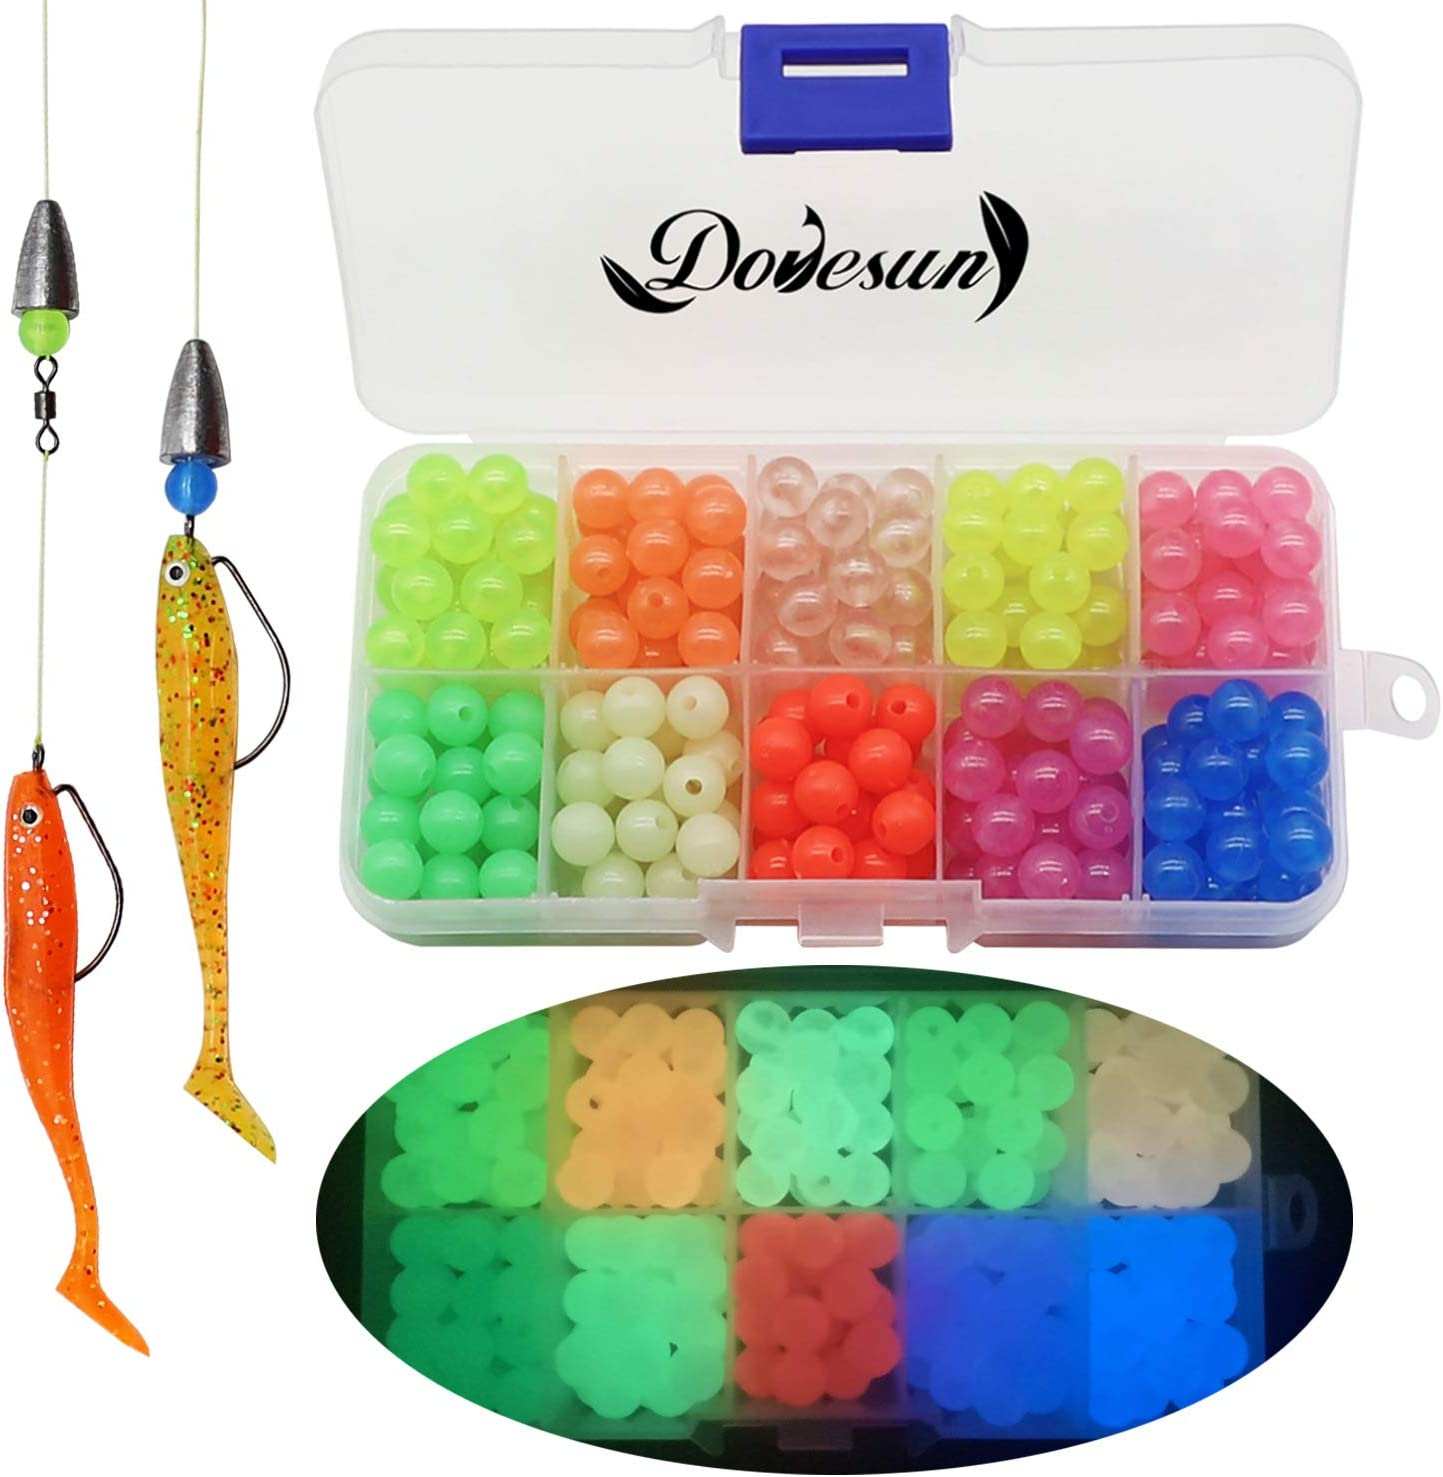 Dovesun Fishing Beads Assorted 10 Cheap mail order specialty store Colors Eggs Bait Phoenix Mall